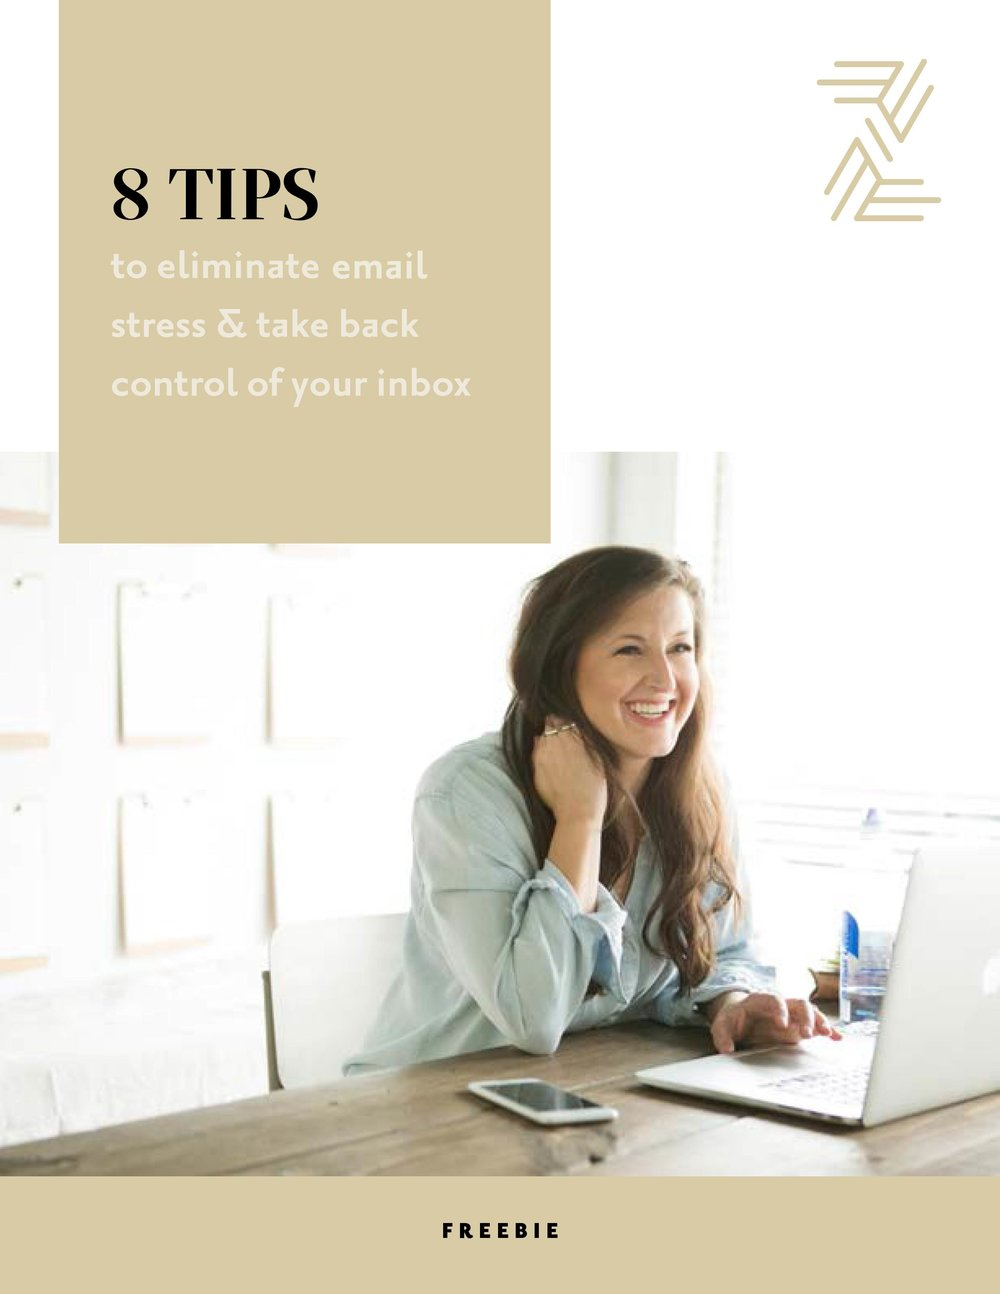 jessica-zimmerman-events-email-stress-freebie